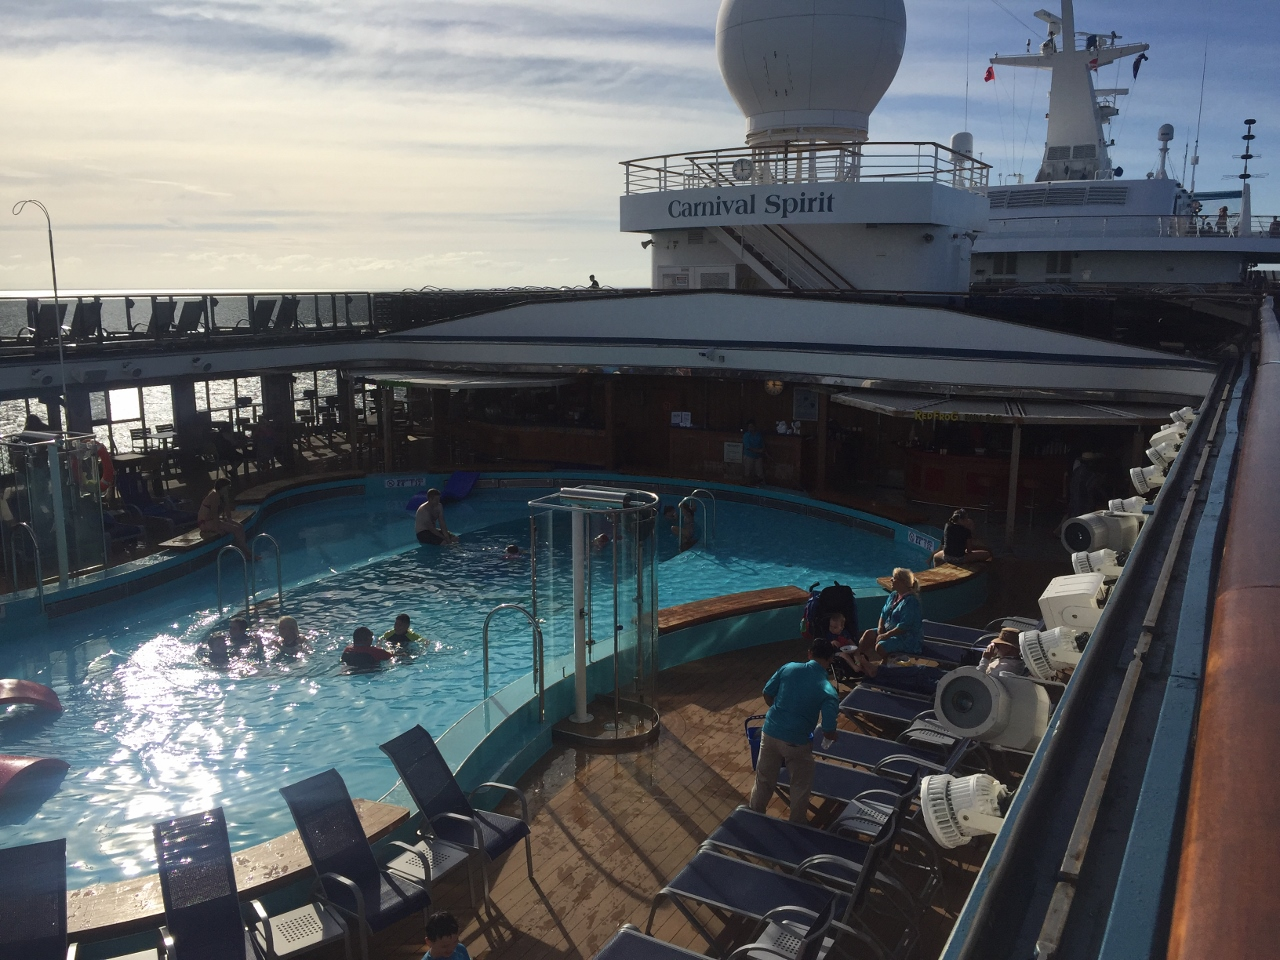 No cruise ships provide lifeguards at their pools, and parents/guardians are responsible for their children swimming.